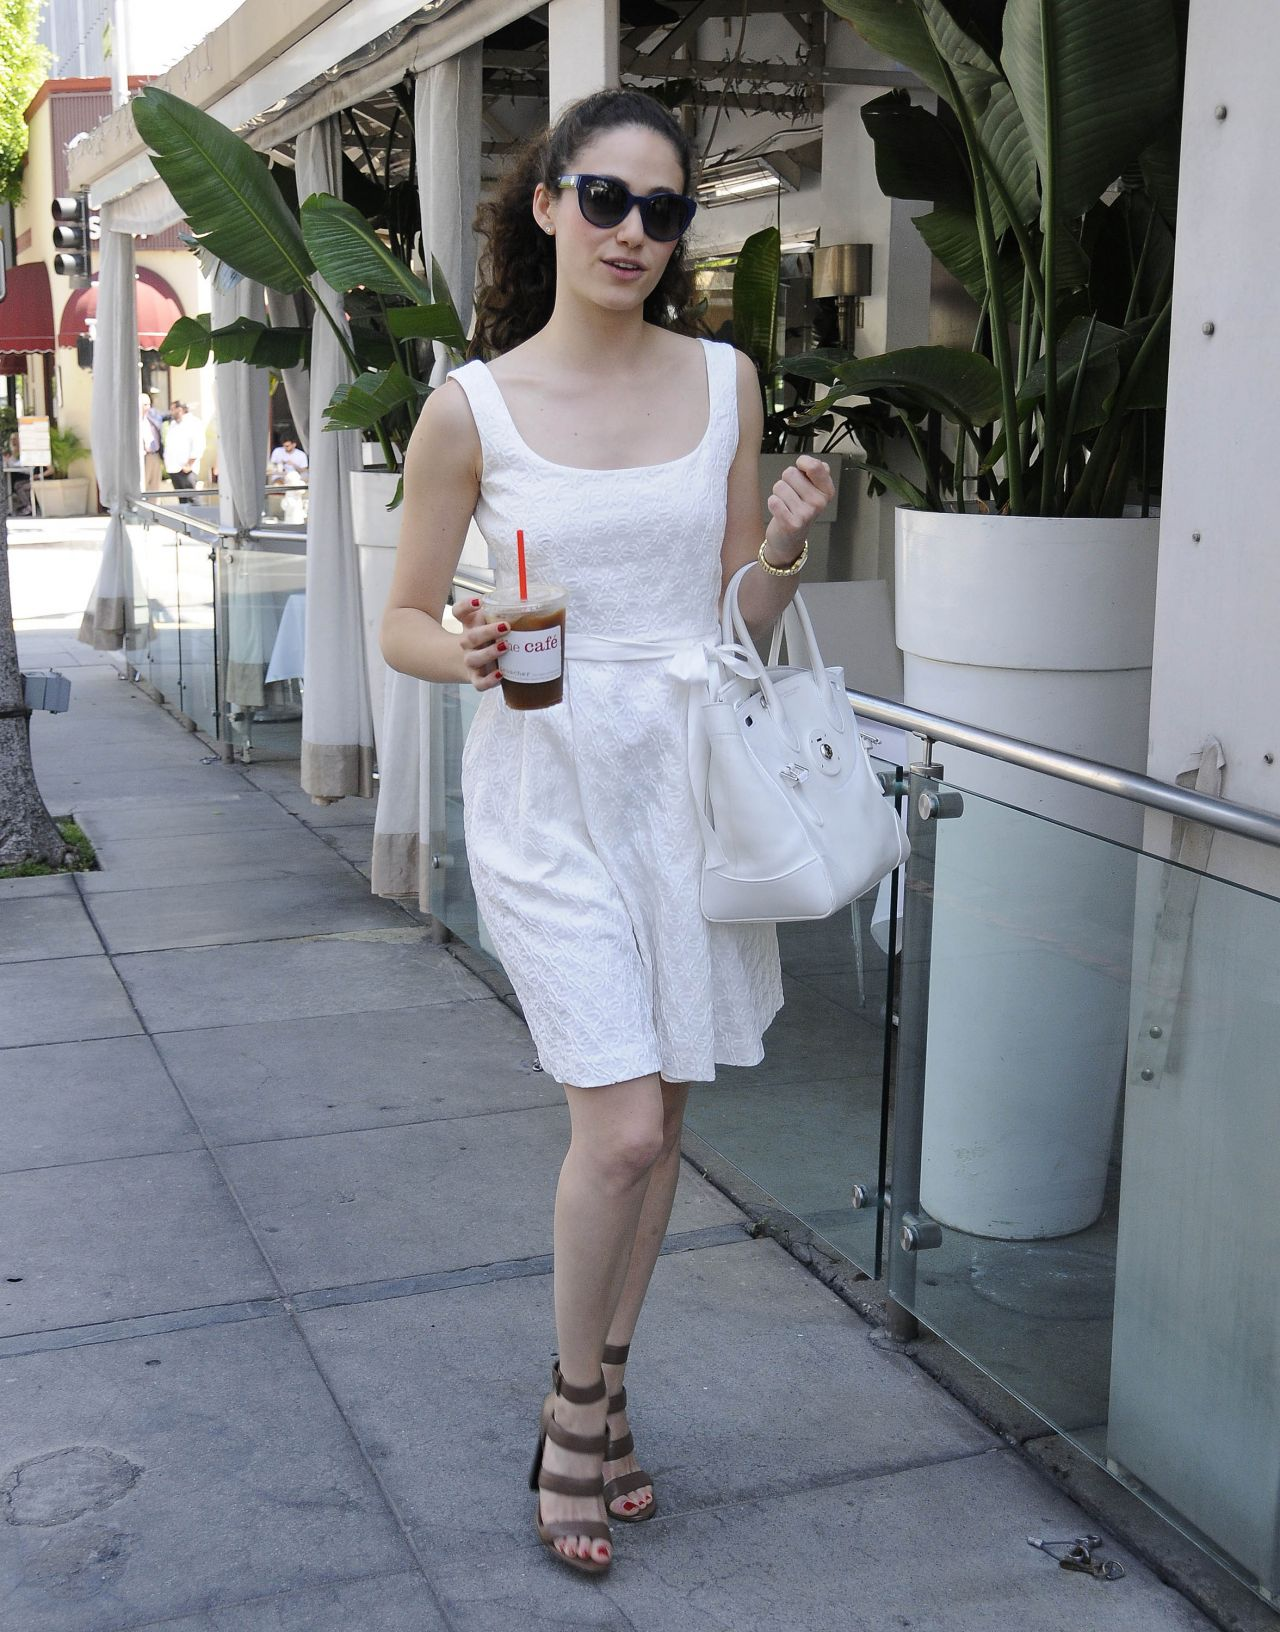 emmy-rossum-summer-style-2015-out-and-about-in-beverly-hills_1